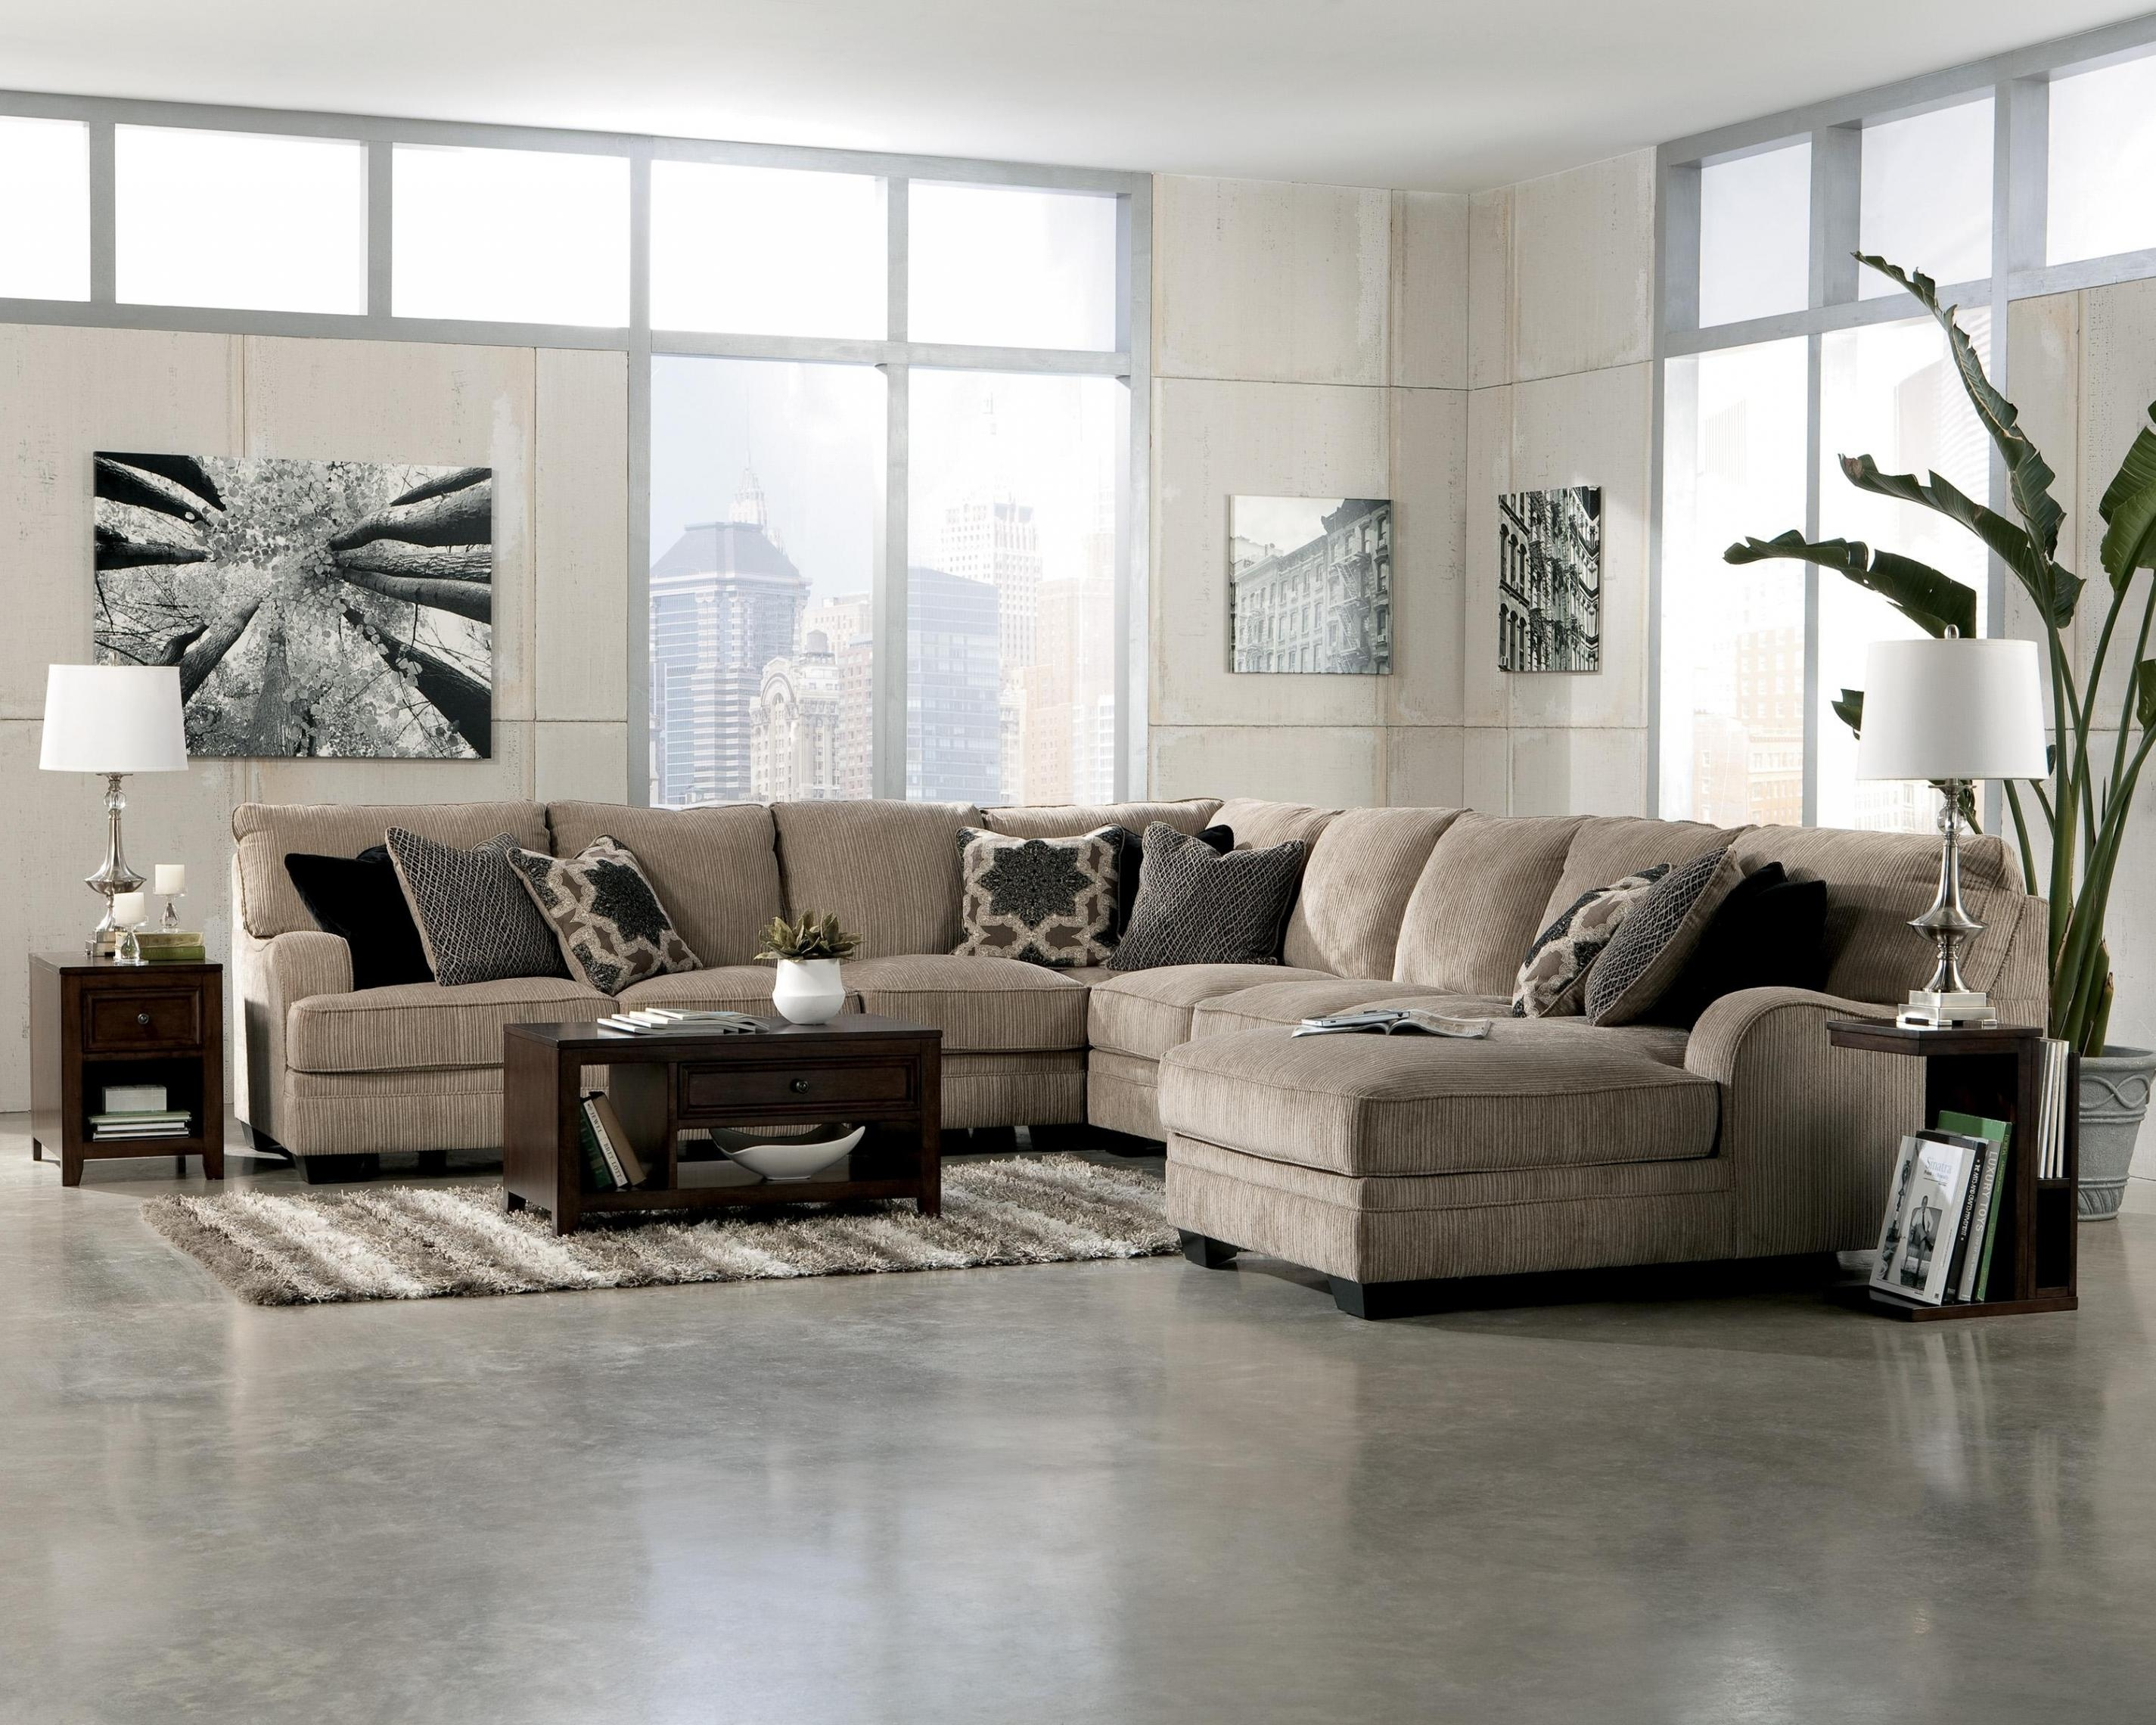 Furniture: Small Sectional Sofas For Small Spaces | Craigslist Throughout Craigslist Sectional (View 13 of 15)